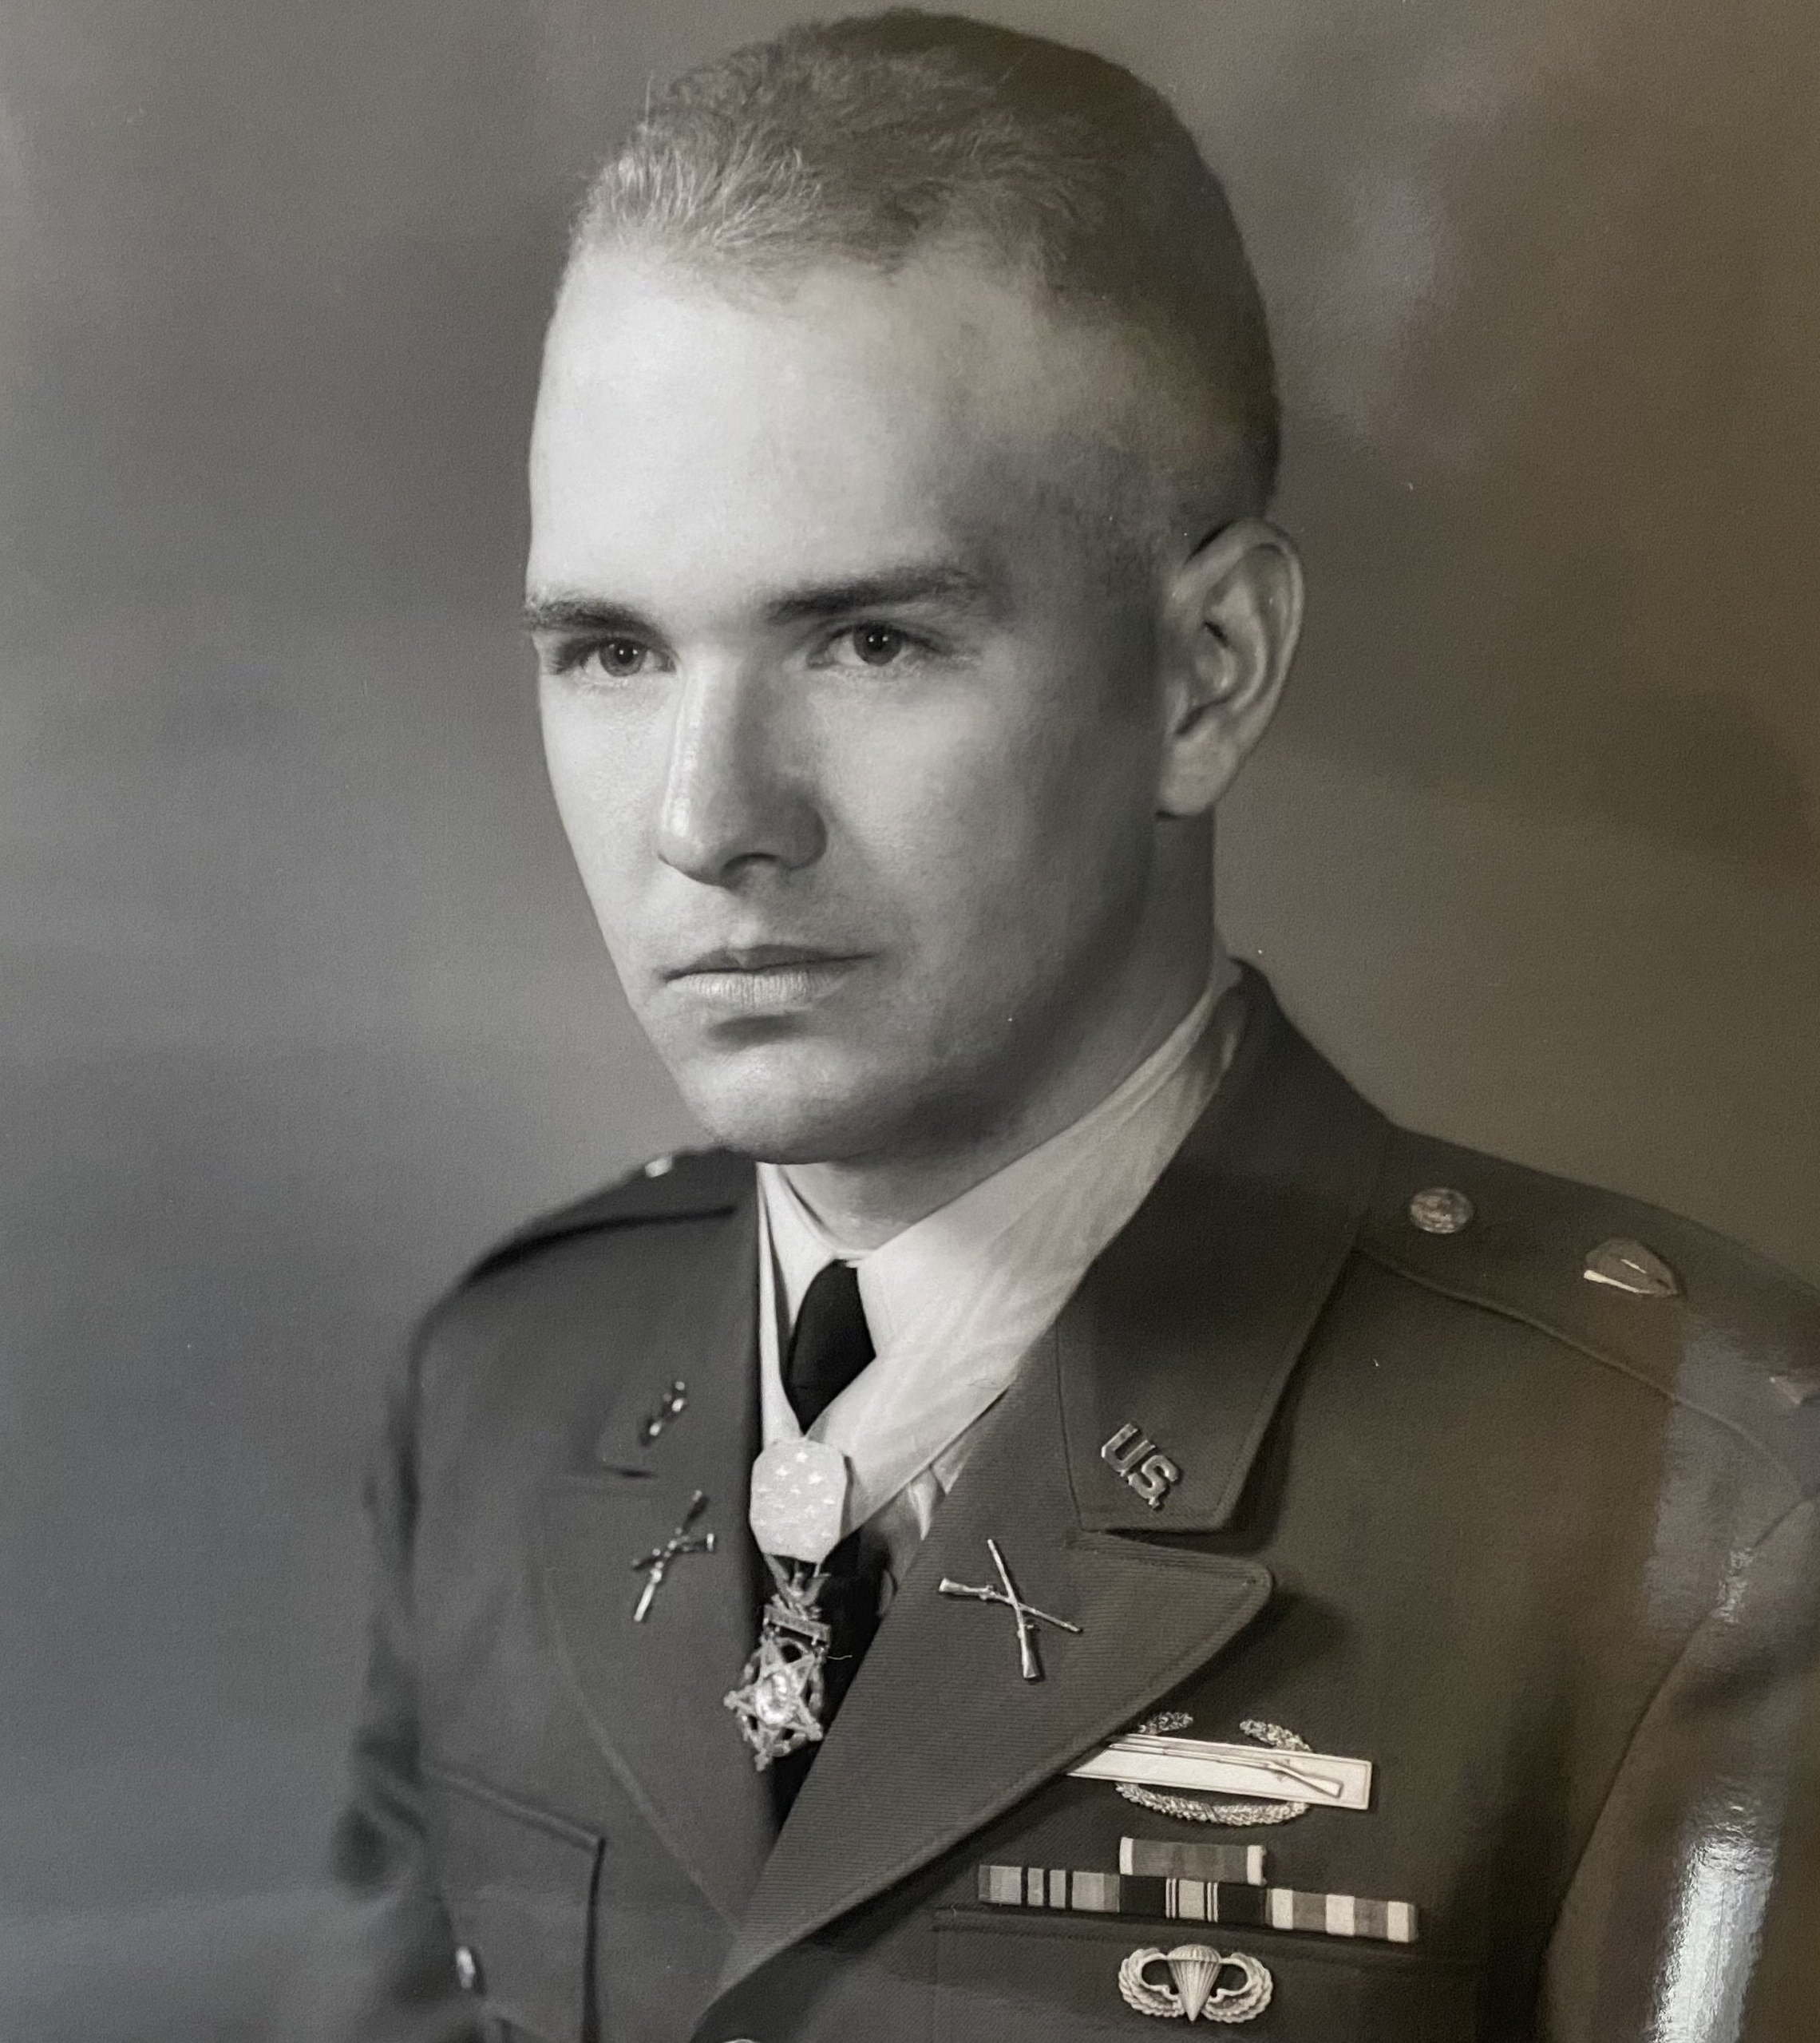 Colonel Walter Joseph Marm, Jr., U.S. Army (Retired) – Battle of Ia Drang Medal of Honor Recipient